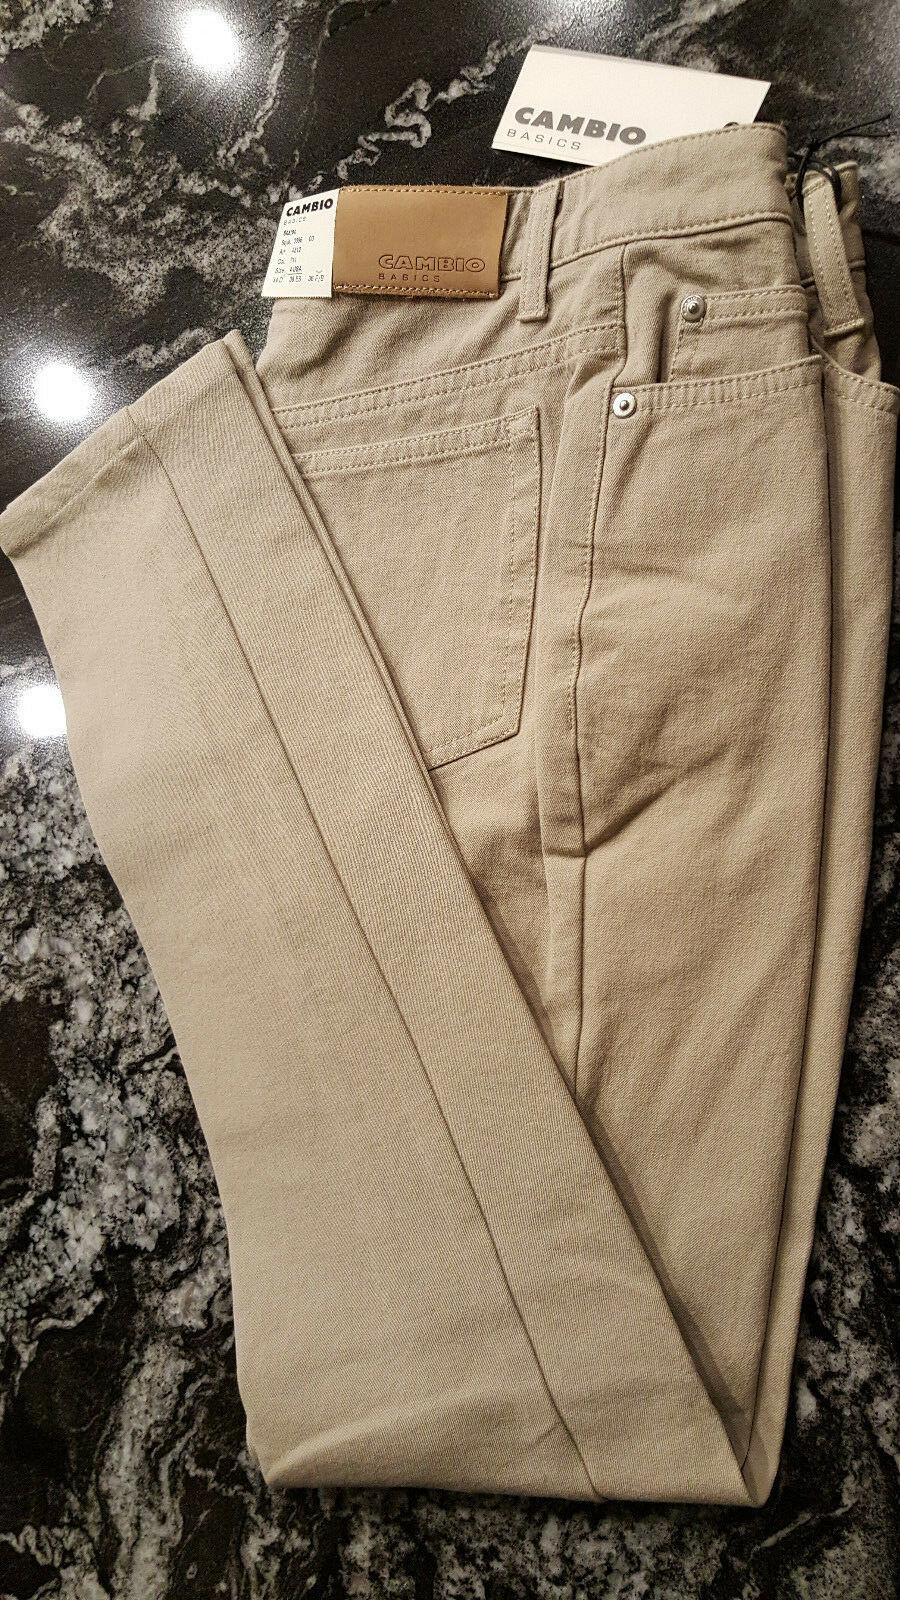 Cambio Womens  Denim Jeans Straight Leg Beige color Size 4 SHARON Style NWT